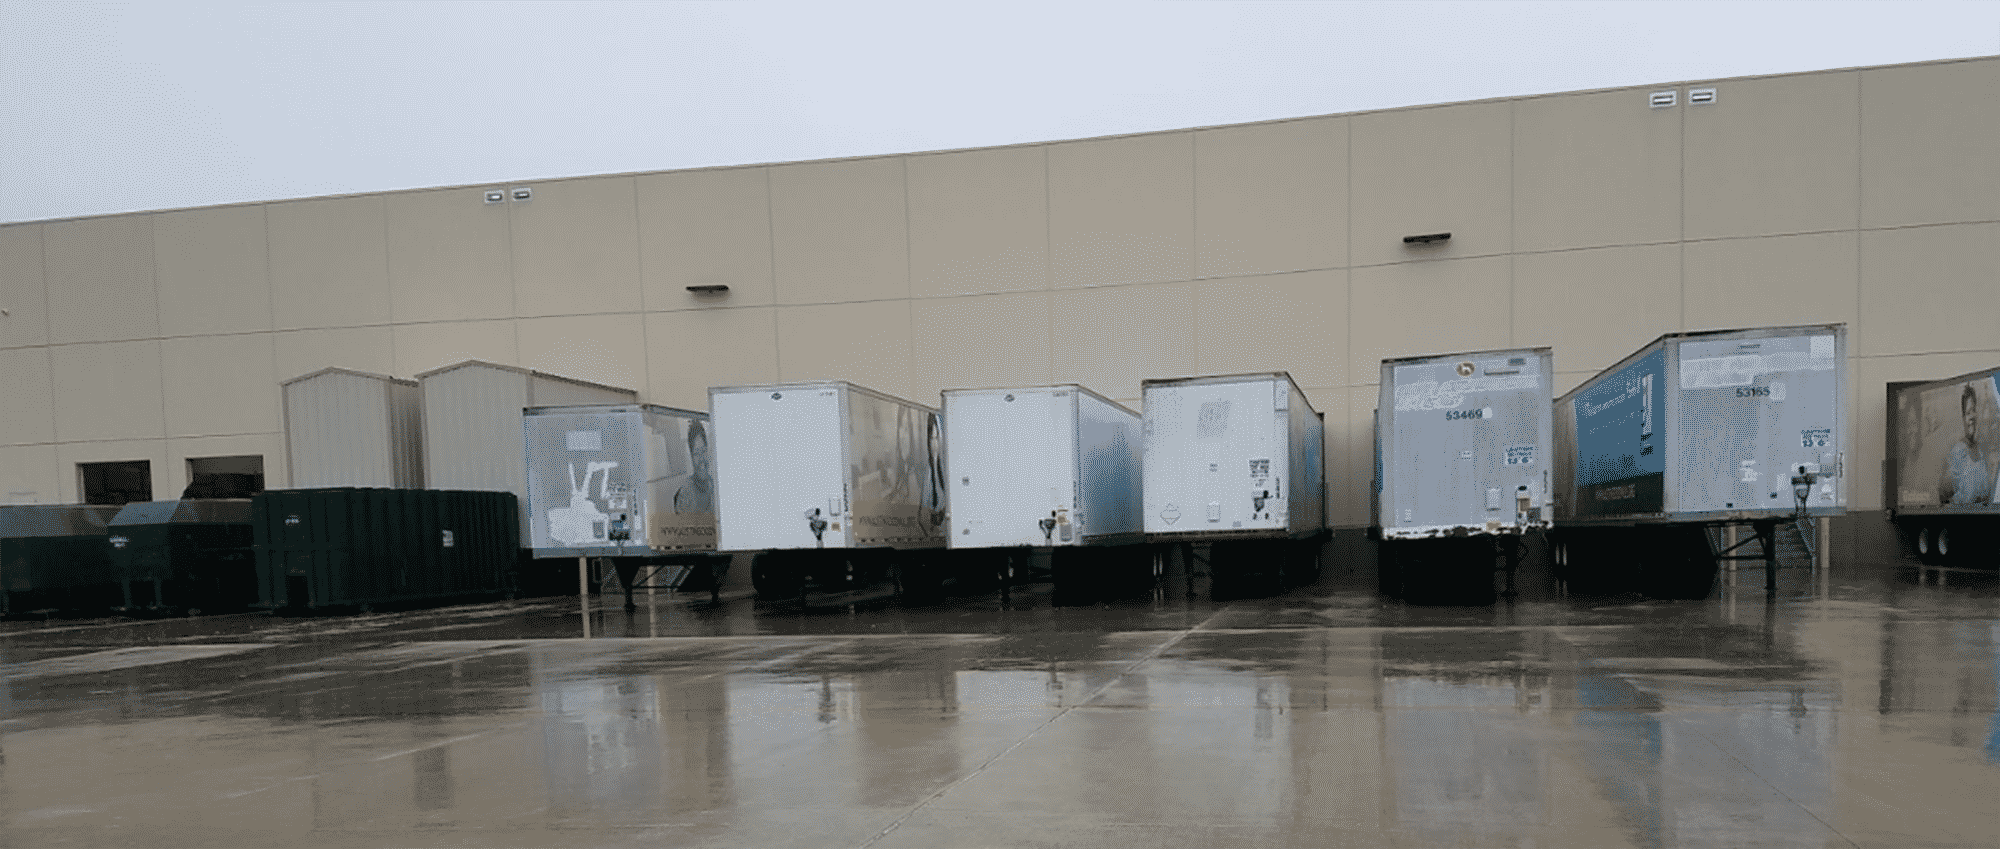 Goodwill North Austin Outlet Industrial Loading